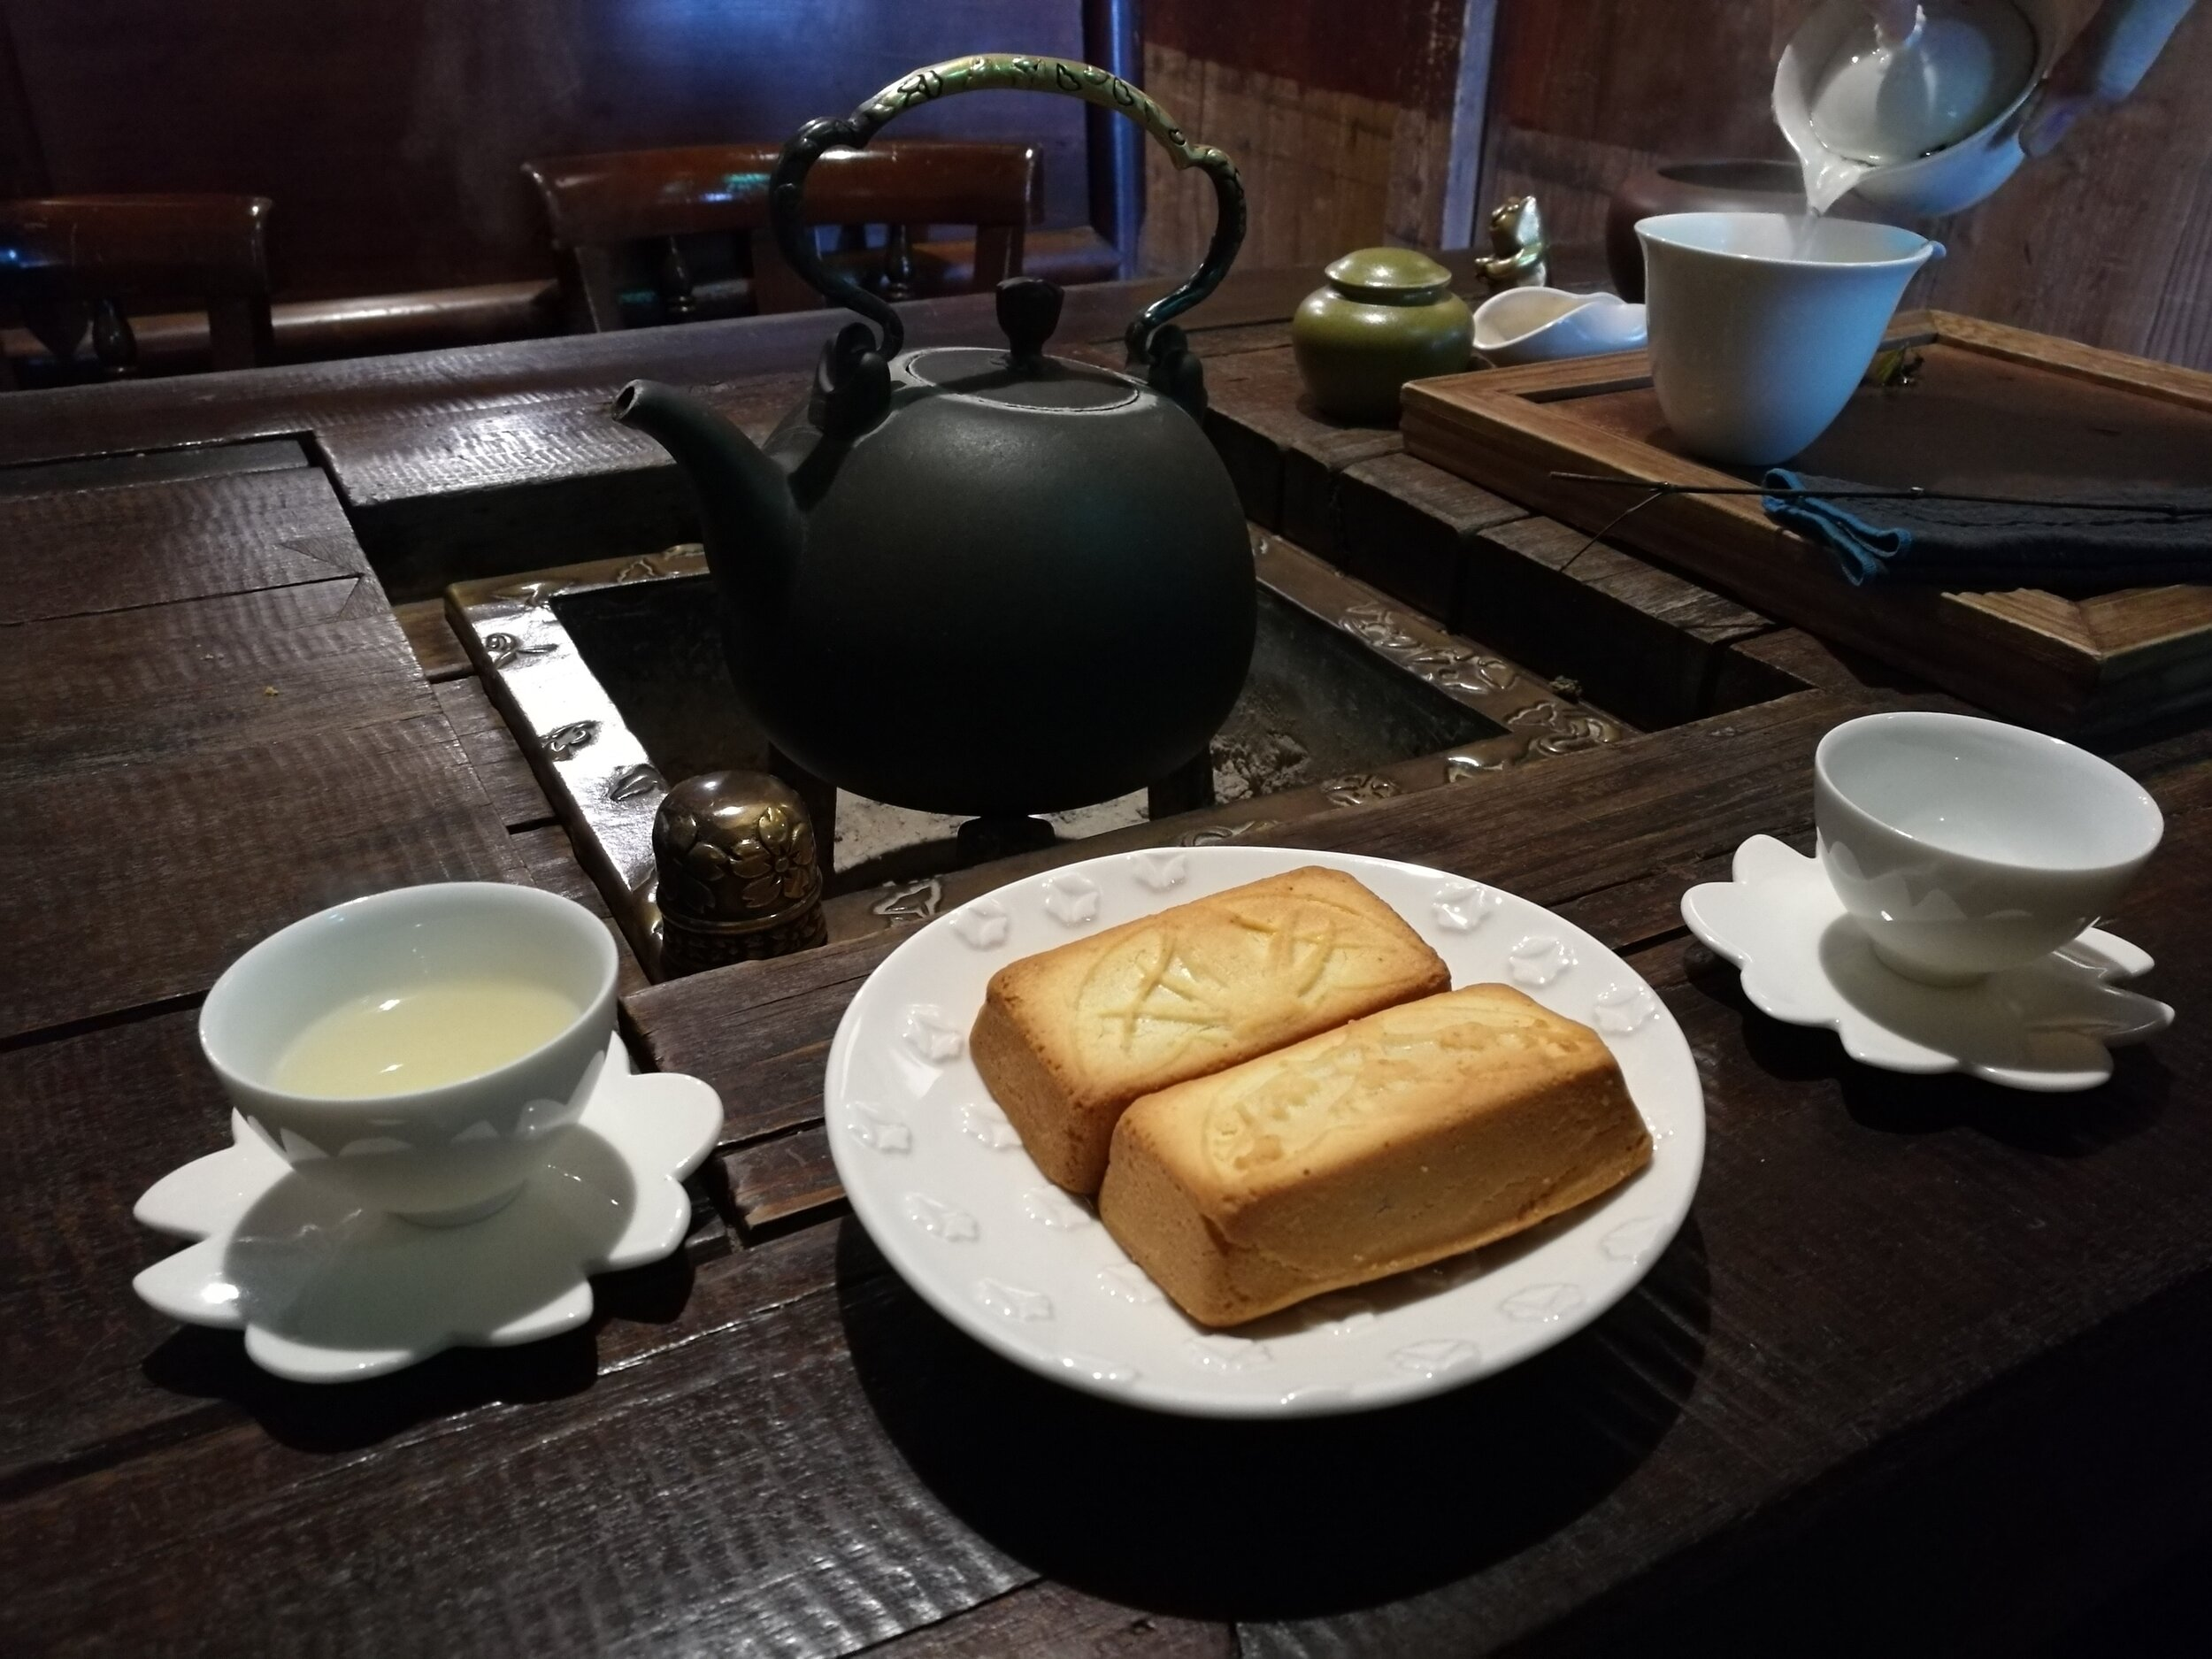 Tea and pineapple cake